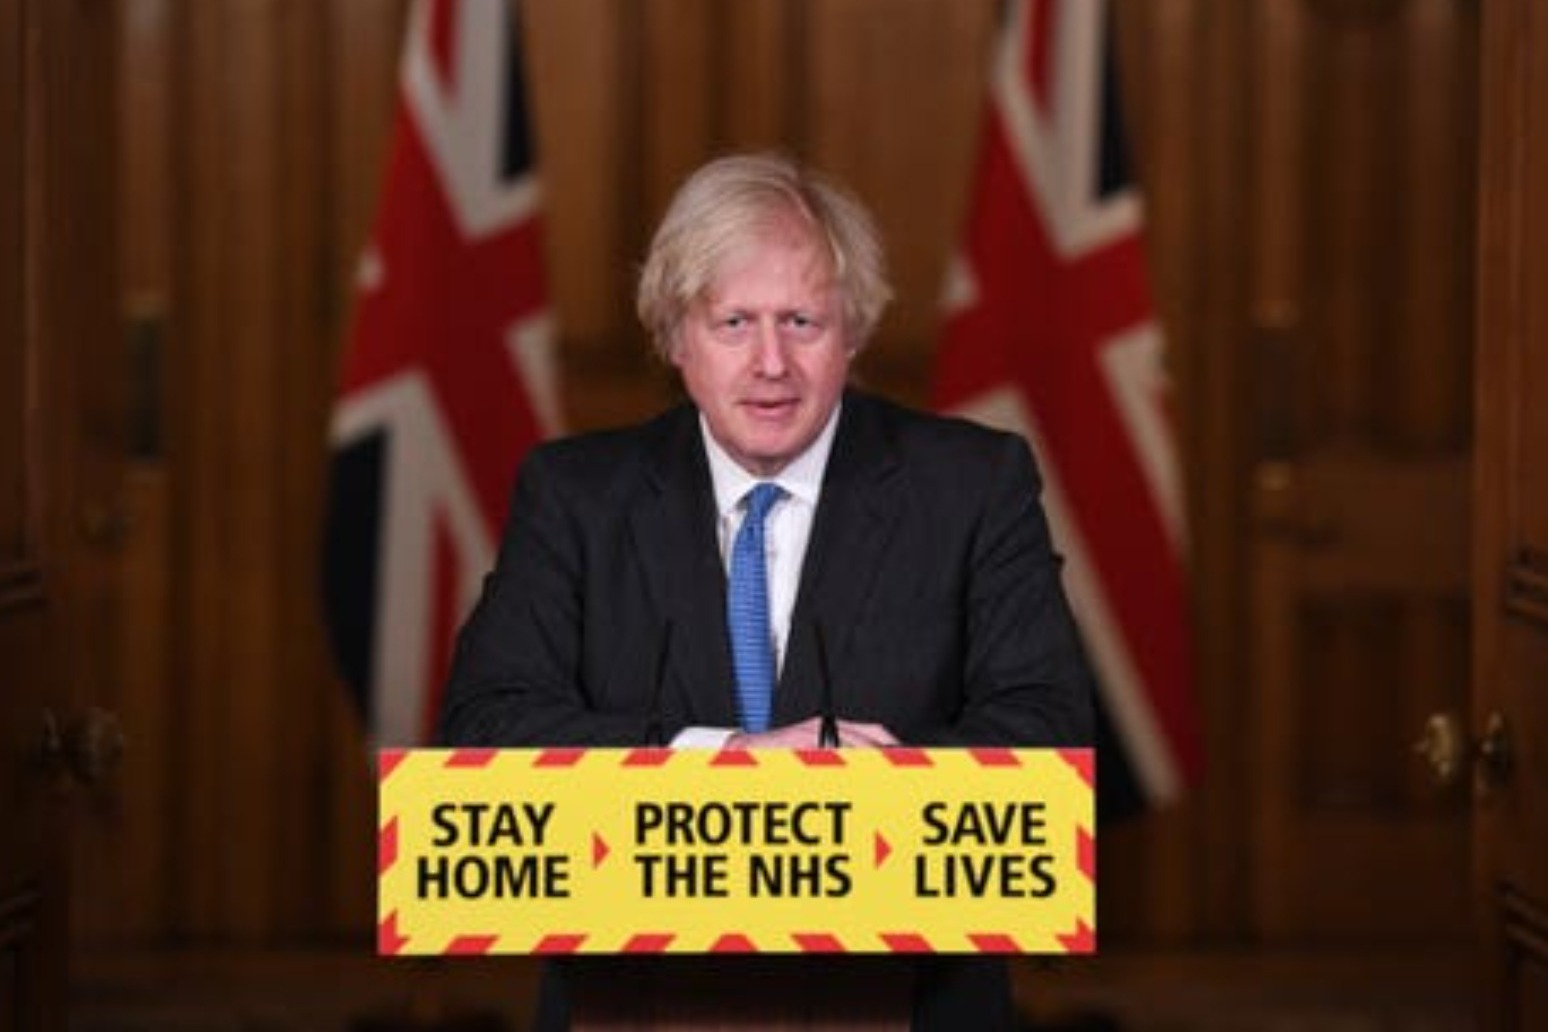 PM 'hopeful' coronavirus restrictions can be cautiously eased